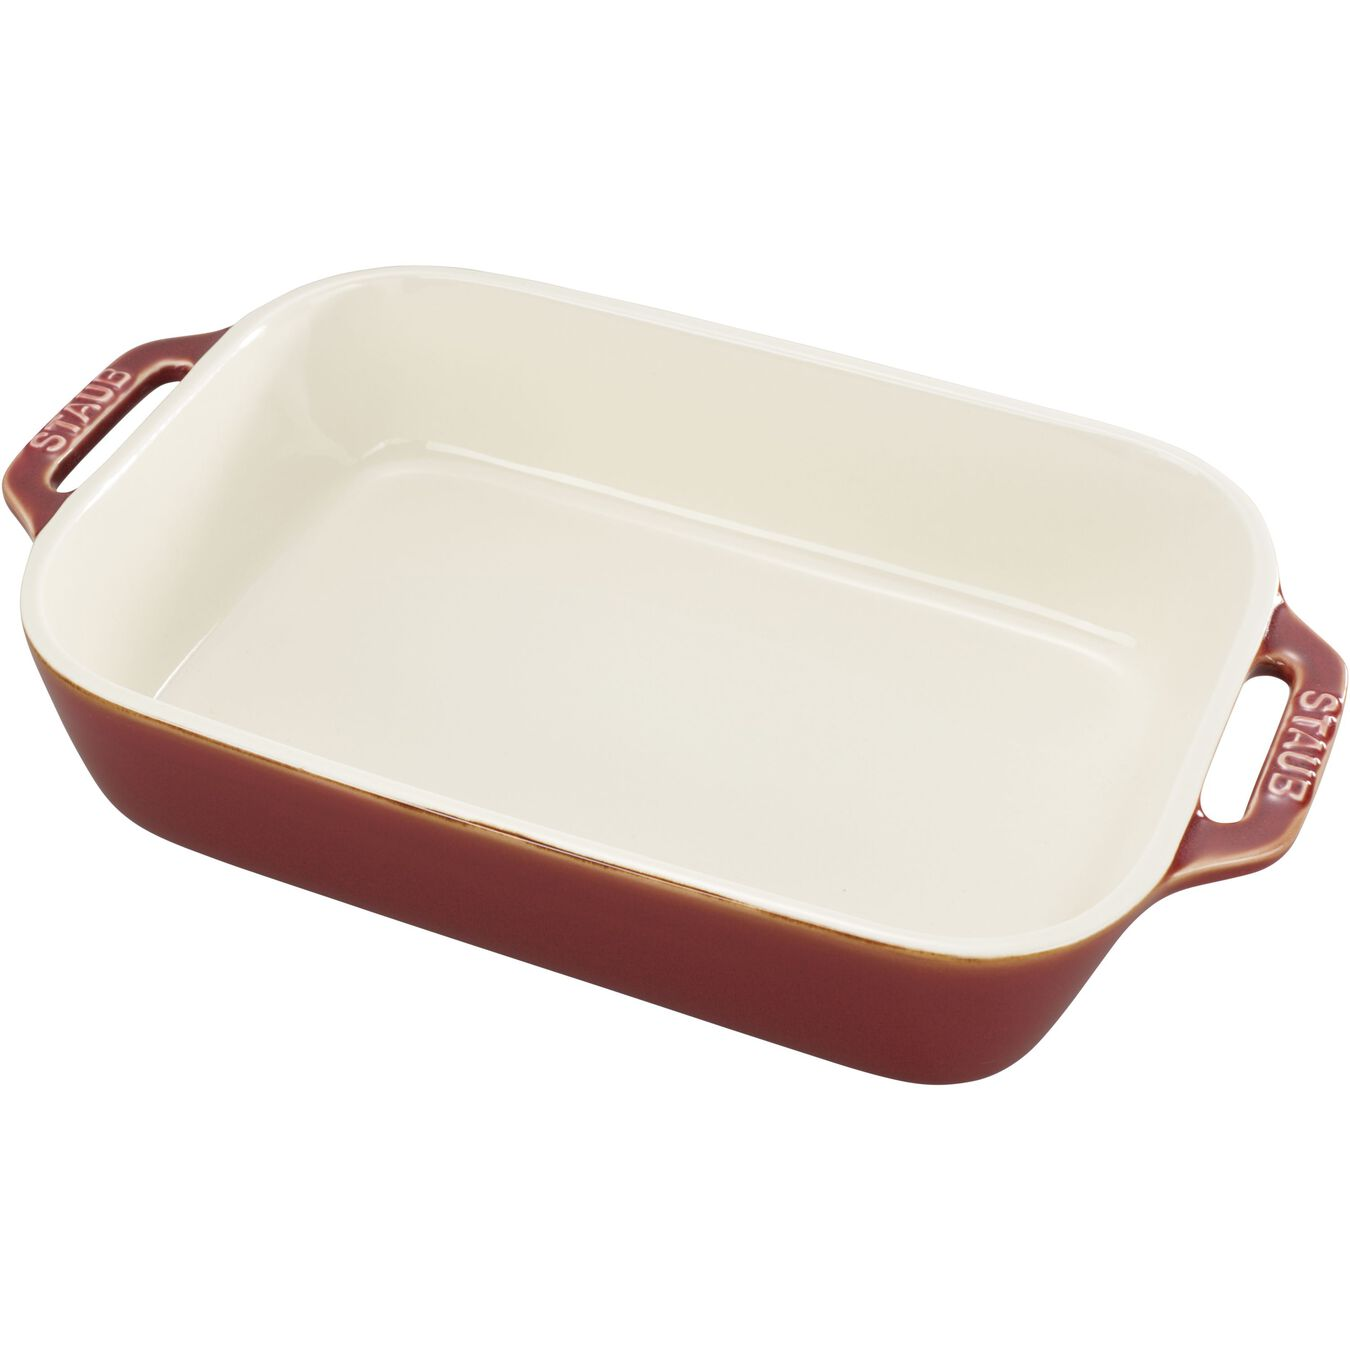 7.87 x 10.75 inch, rectangular, Oven dish, rustic red,,large 2